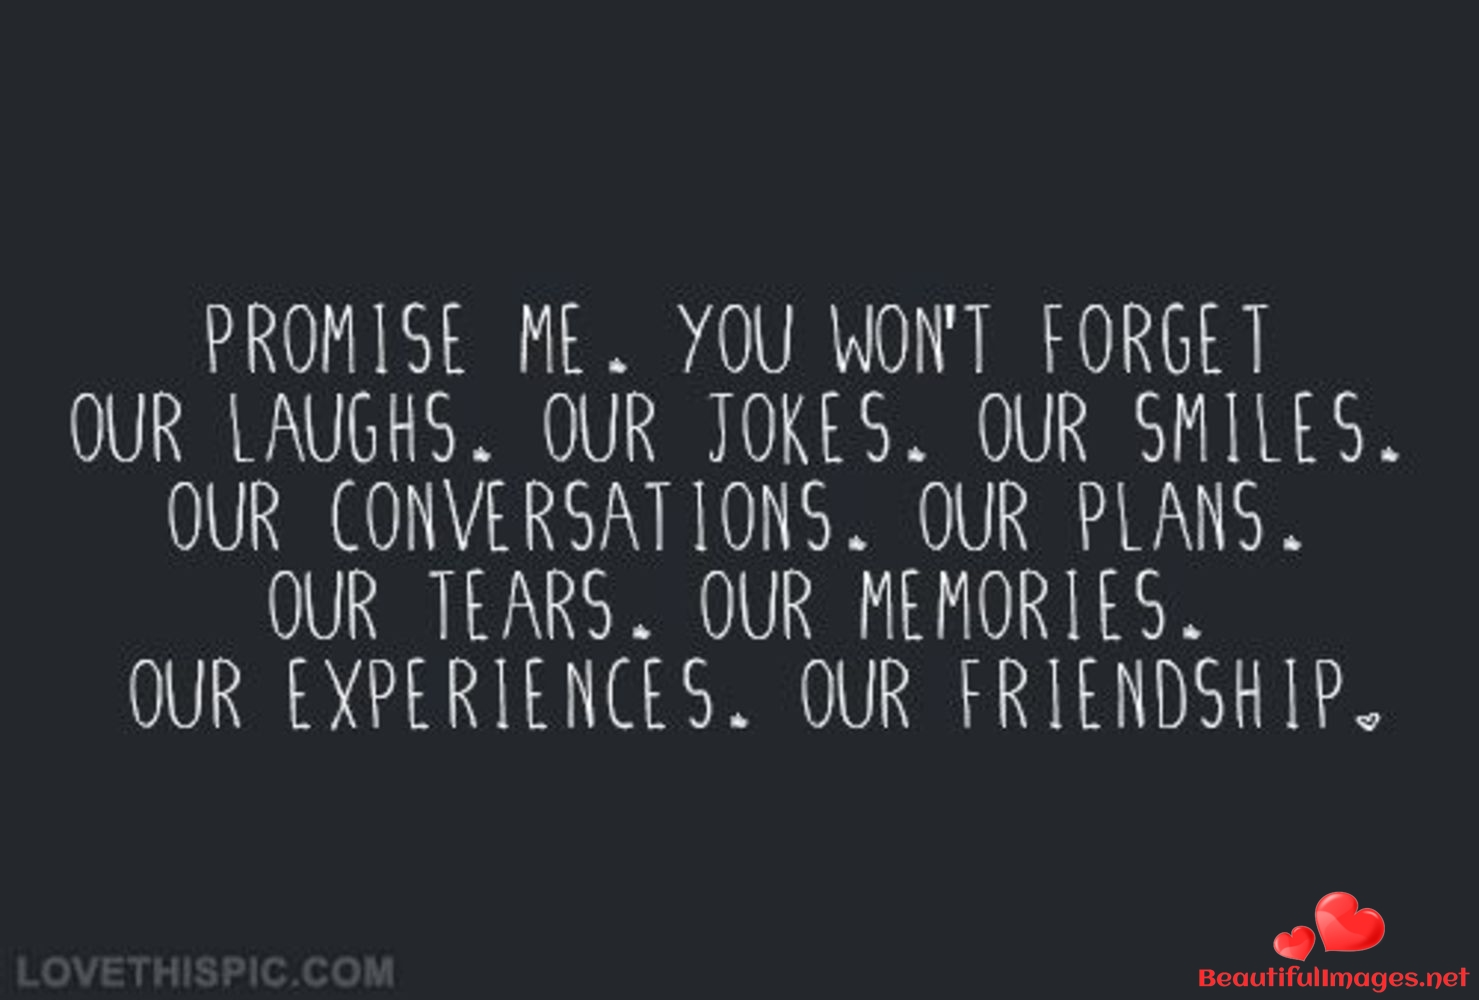 Images-Quotes-Facebook-Whatsapp-Nice-Pictures-510